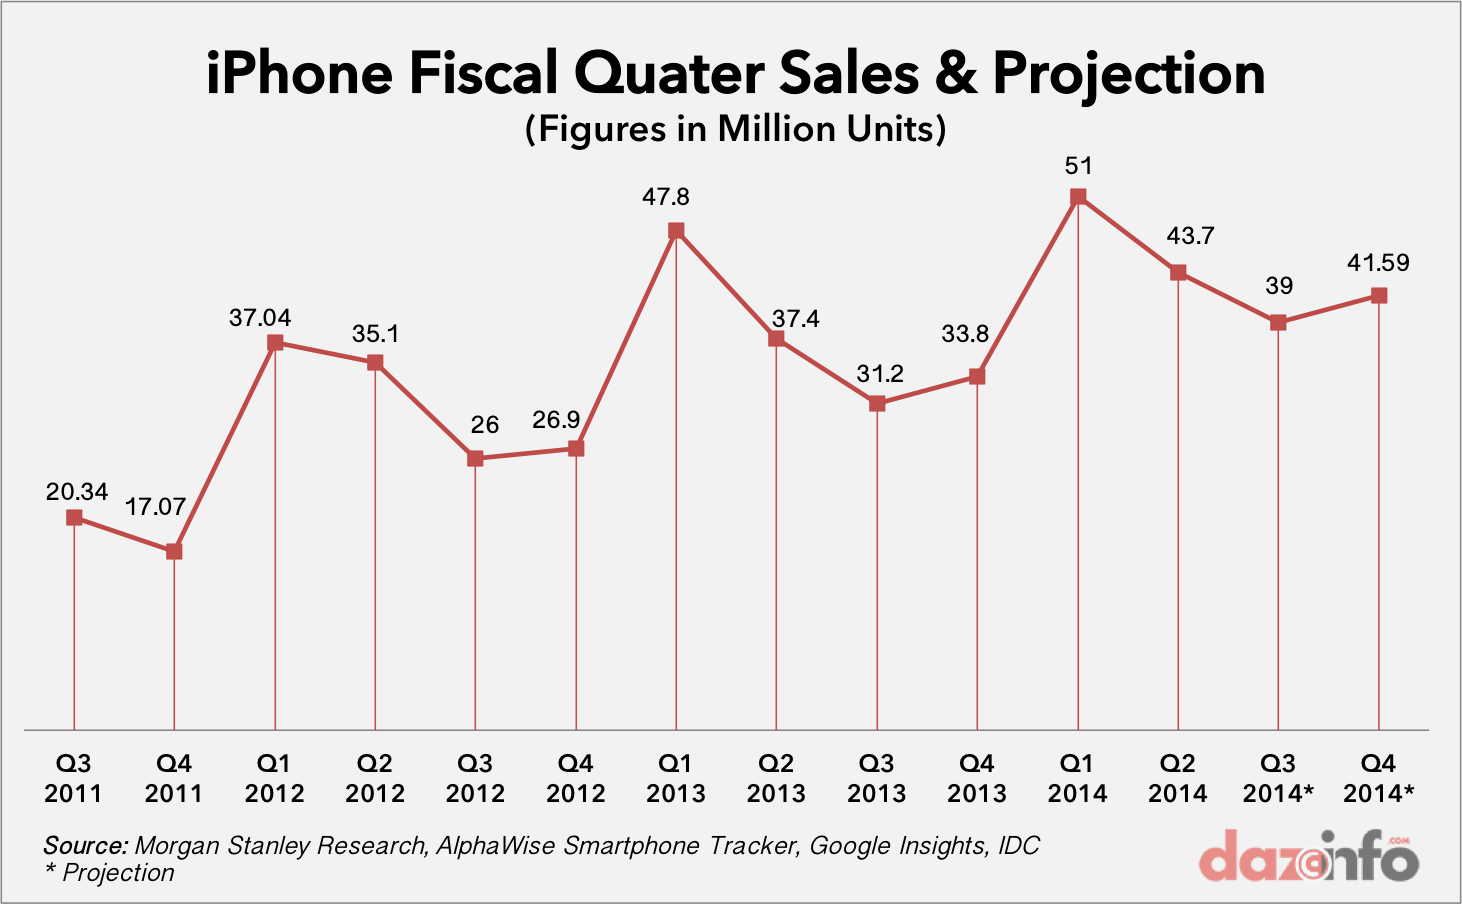 Apple iPhone Sales Projection Q4 2014